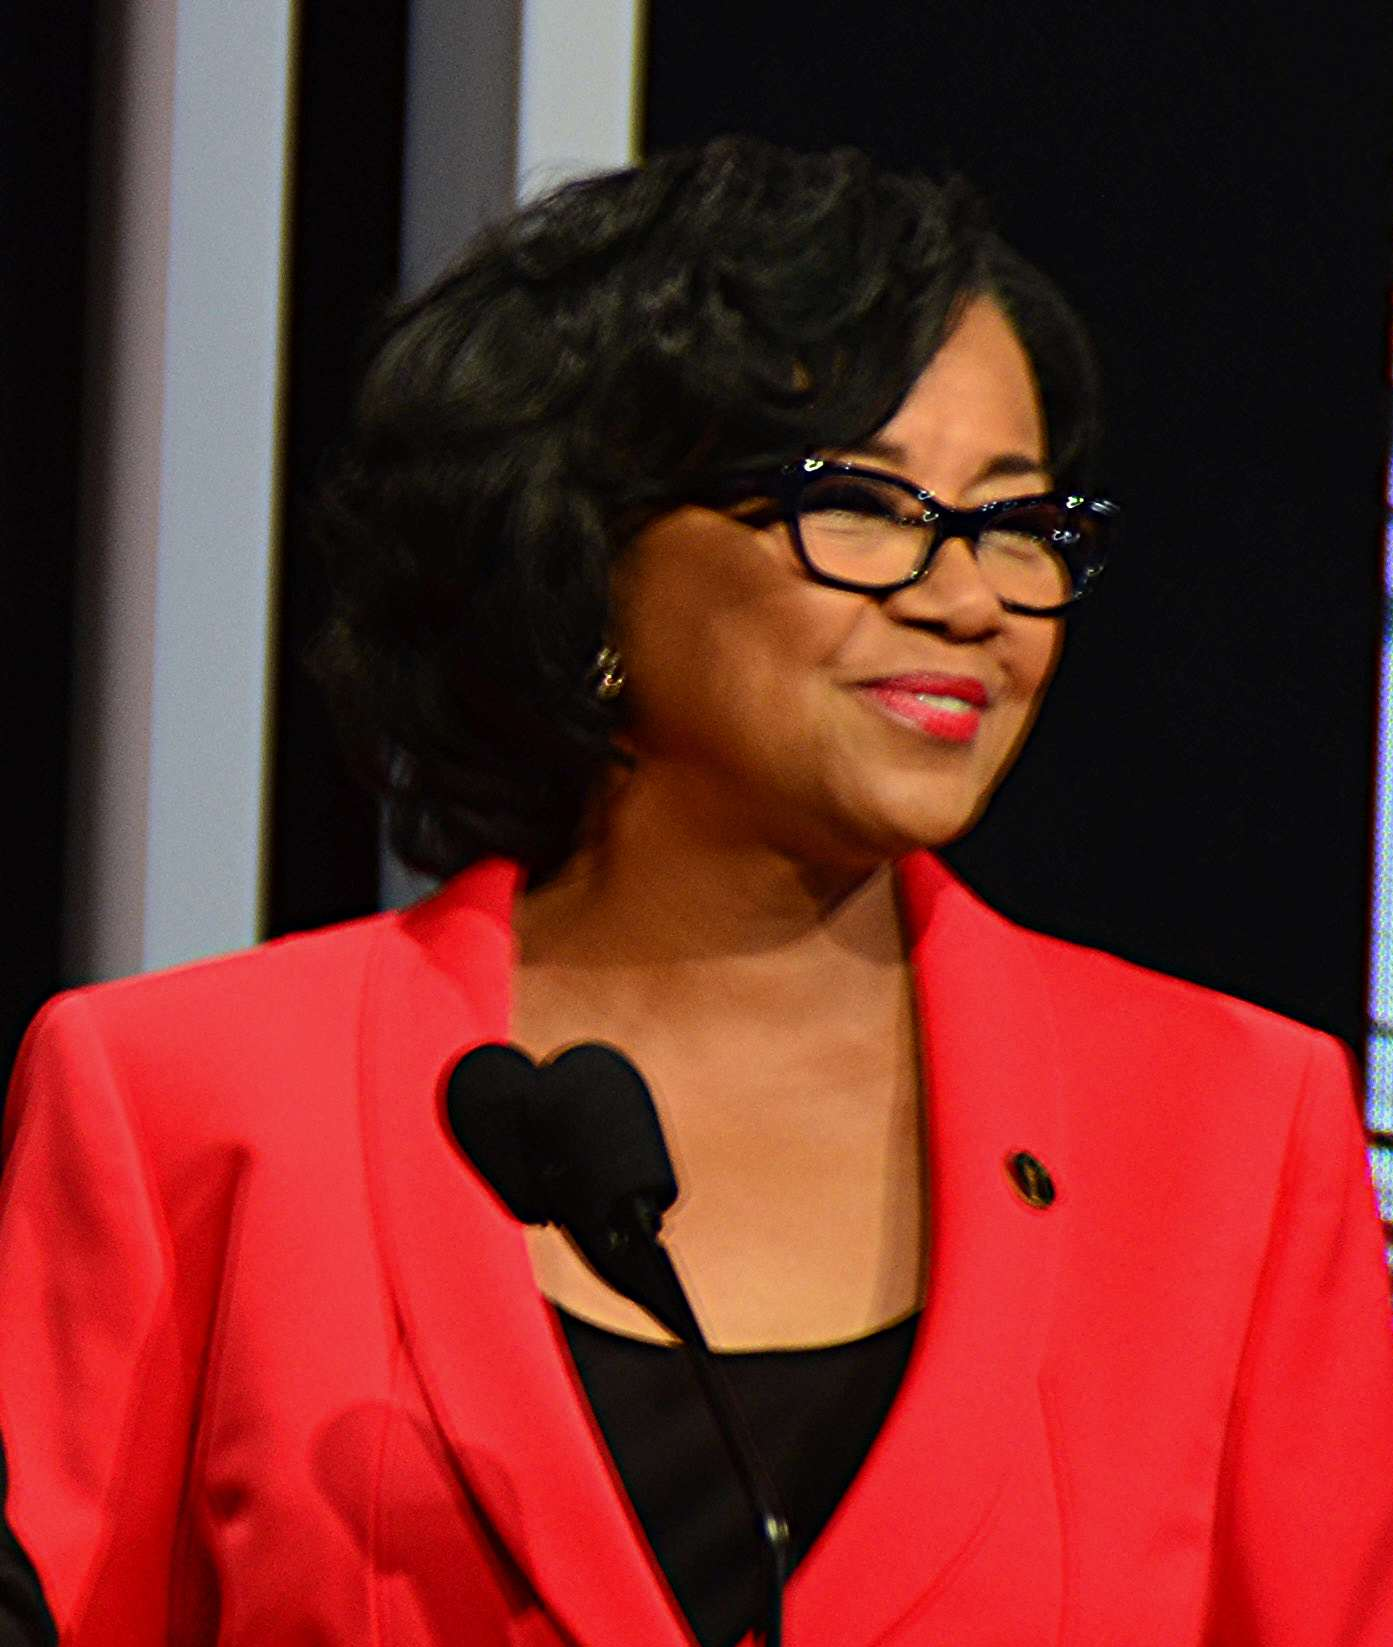 Cheryl Boone Isaacs 87th Oscars Nominations Announcement Prominent Asian Film Figures Send Open Letter To The Academy Protesting Racist Joke